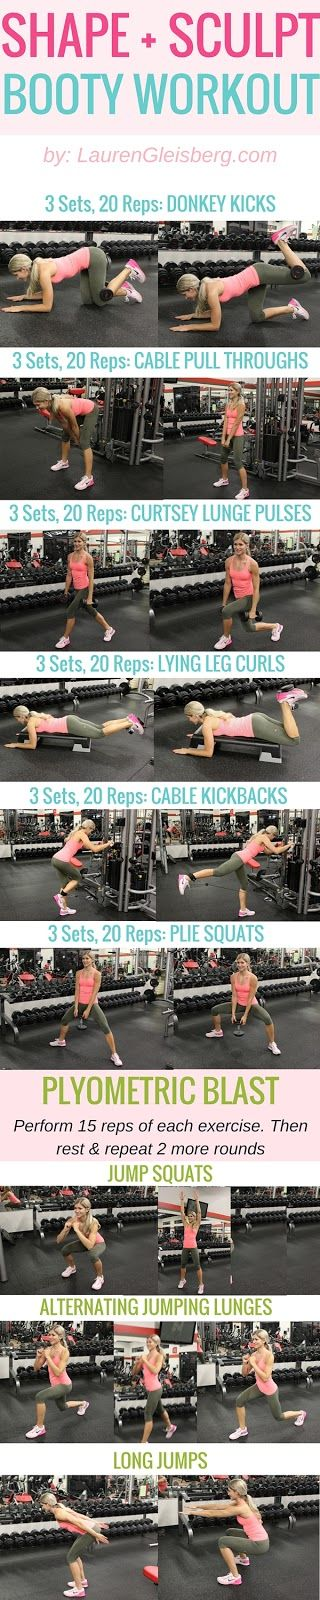 SHAPE & SCULPT LEGS & BOOTY WEIGH TRAINING WORKOUT #LGBeautyAndBooty Challenge Week 3, Day 1 by LaurenGleisberg.com: Lgbeautyandbooty Shape, Leg Glutes, Body Workout, Glutes Legs, Legs Booty, Legs Butt, Booty Workout